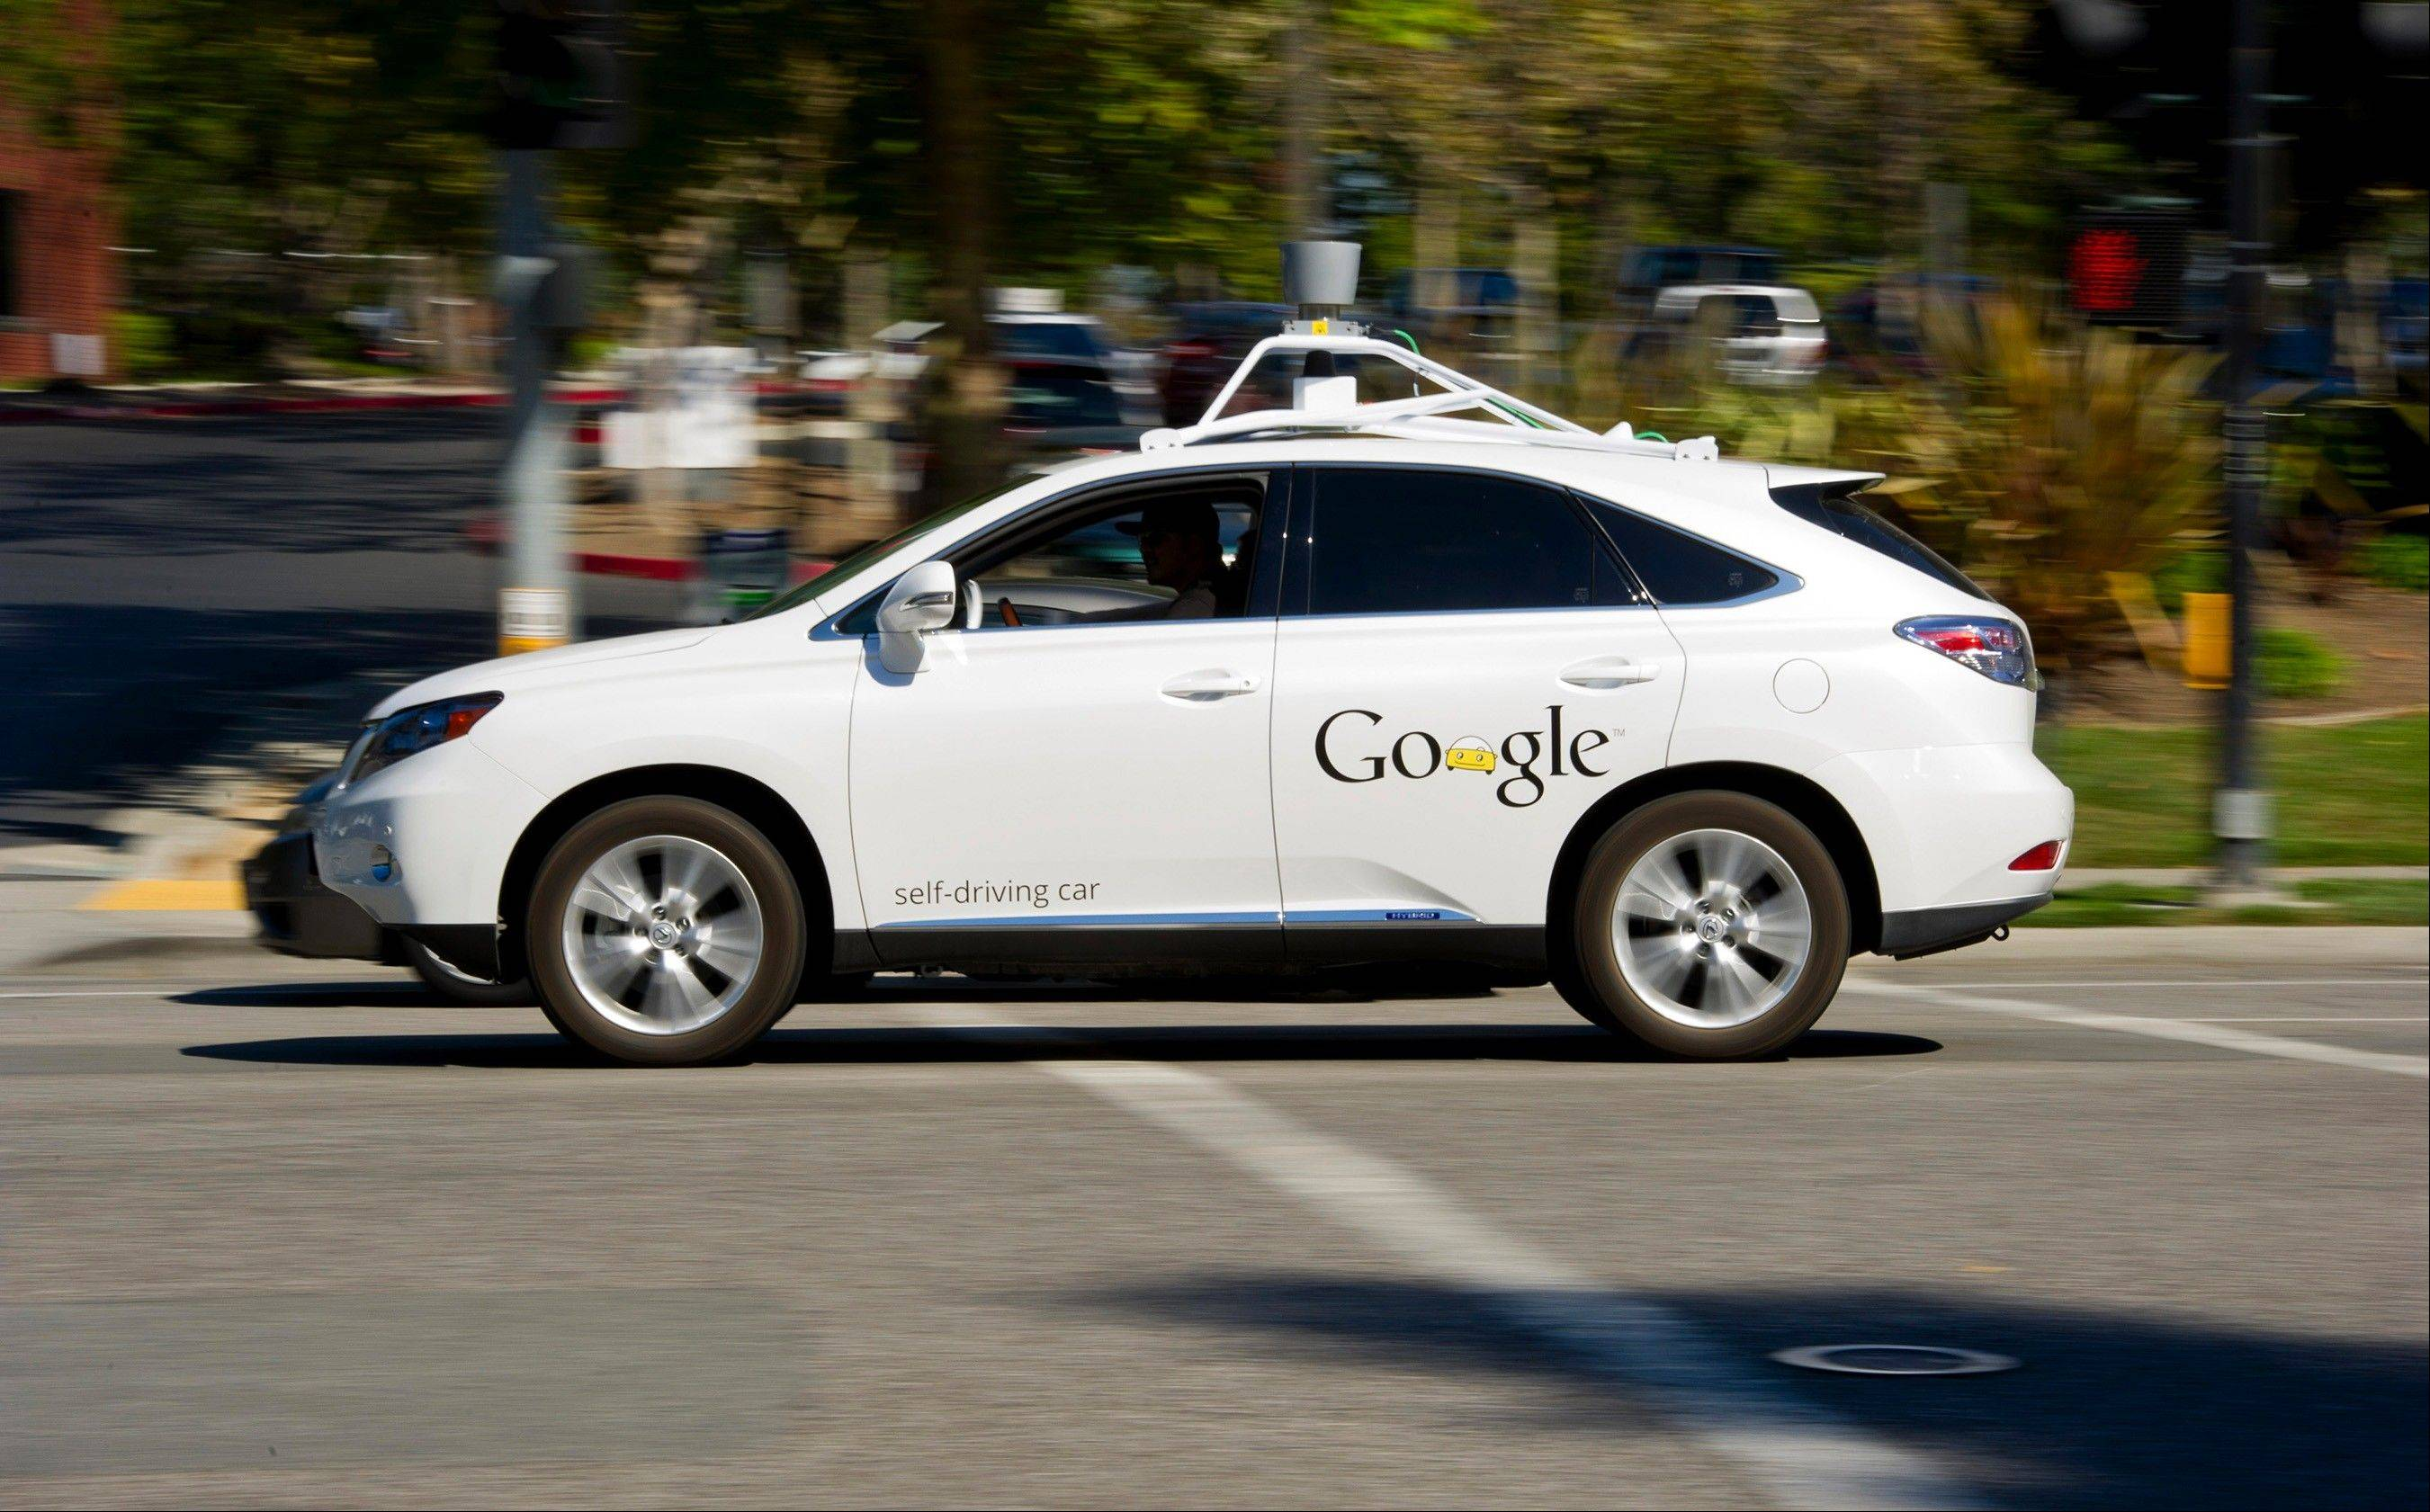 A man drives a Google self-driving car at the company's headquarters in Mountain View, Calif.